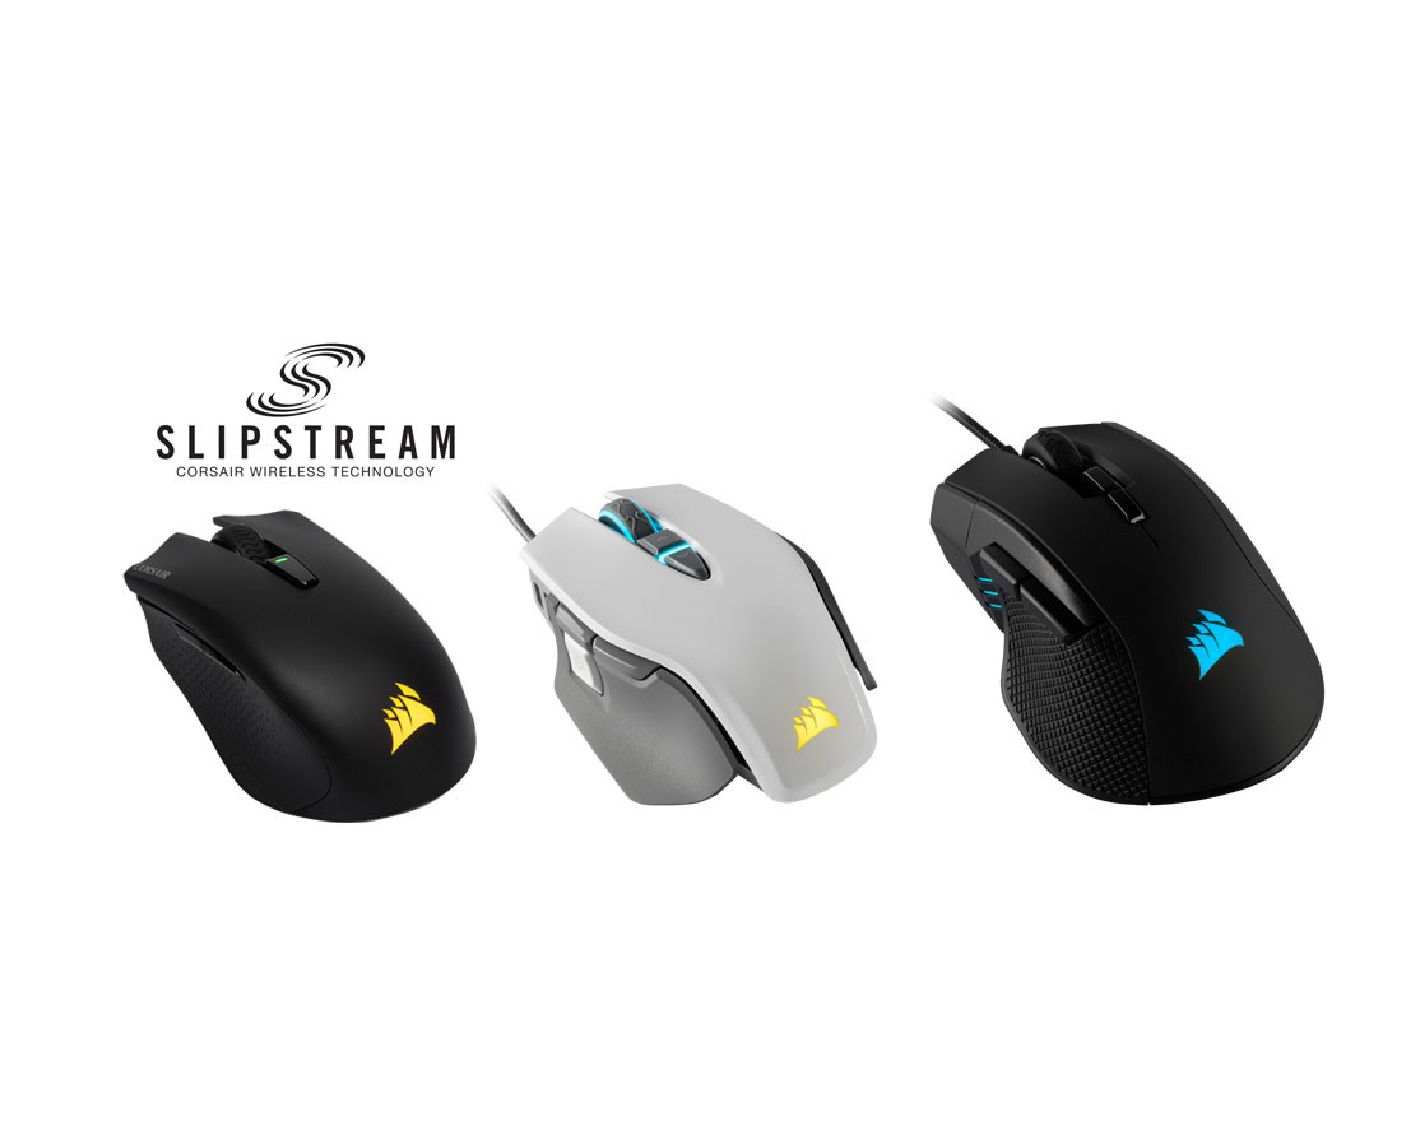 CORSAIR 發表三款全新滑鼠HARPOON RGB WIRELESS、IRONCLAW RGB、M65 RGB ELITE - XFastest - 02論壇_業界動態500x40001.png